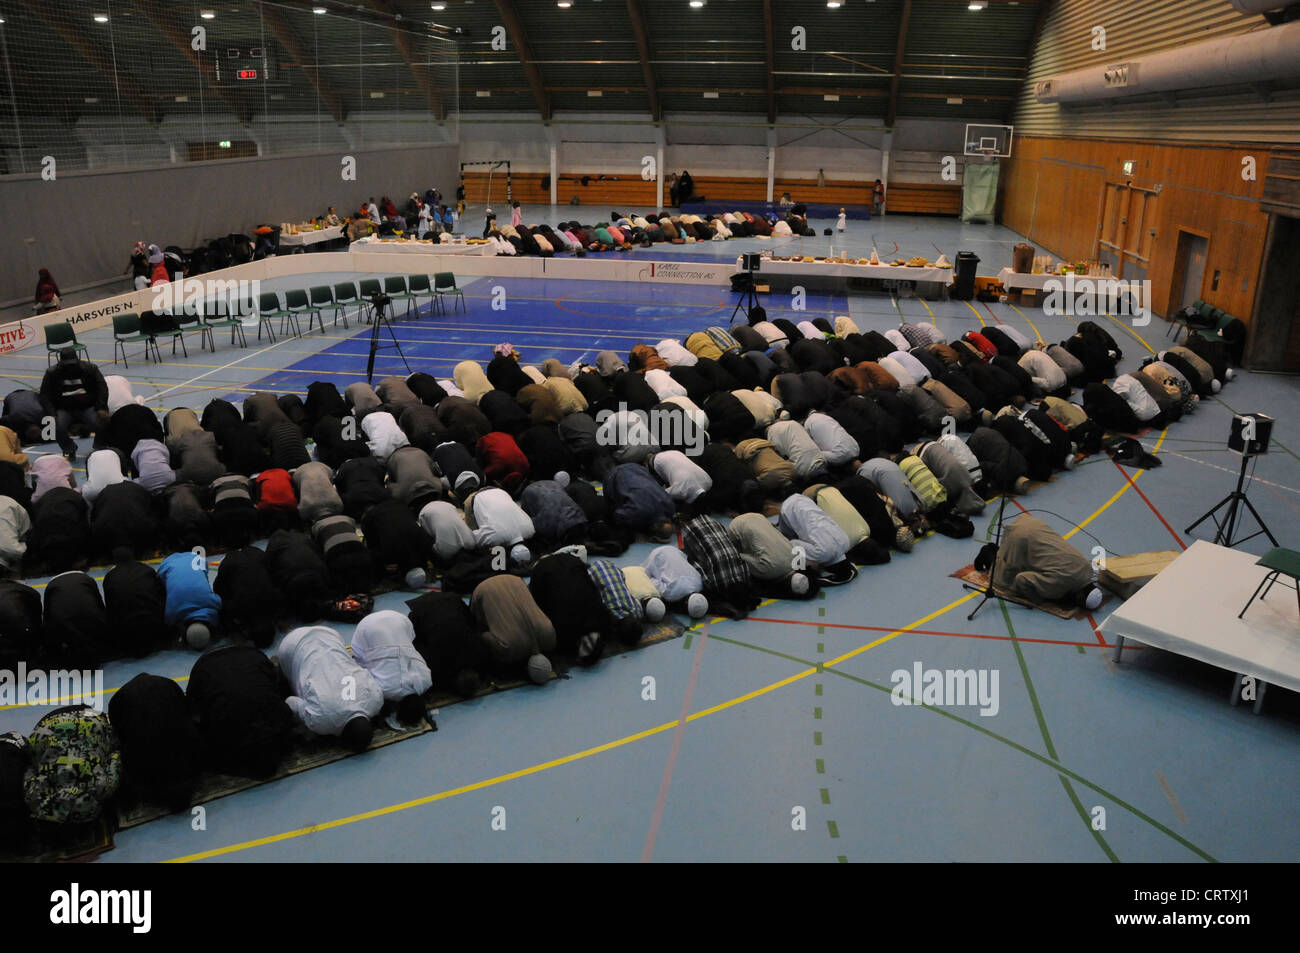 Feast of the Id al-Fitr, the end of Ramadan and the breaking of the fast in Tromso, Norway. Year 2011. - Stock Image